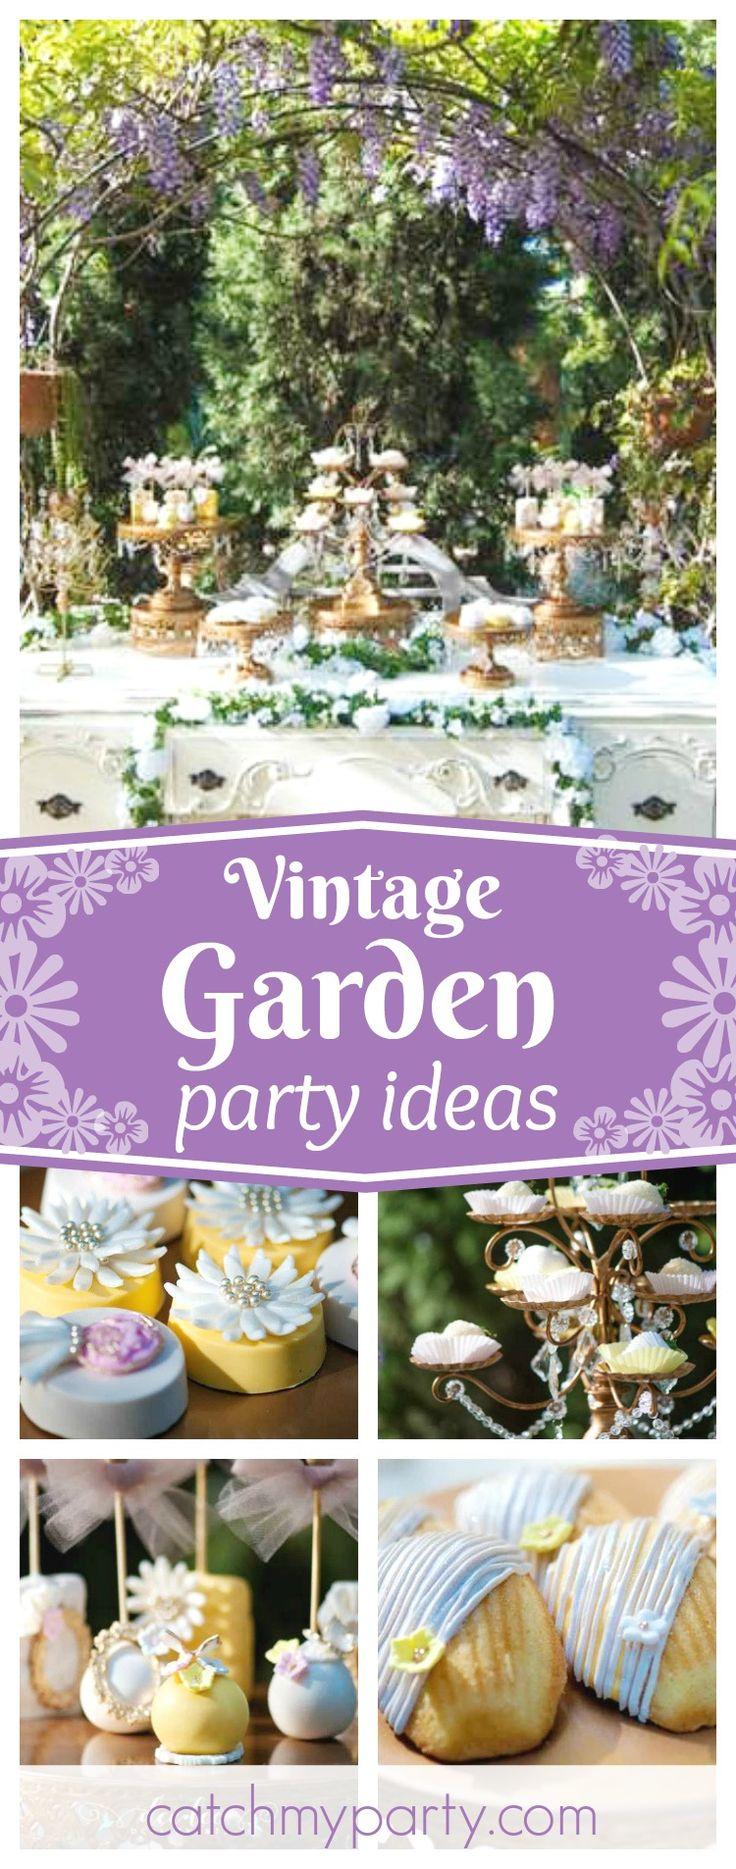 Garden Party Ideas Pinterest garden party baby shower ideas 17 best images about baby shower party ideas on pinterest Vintage Garden Wedding Vintage Garden Party